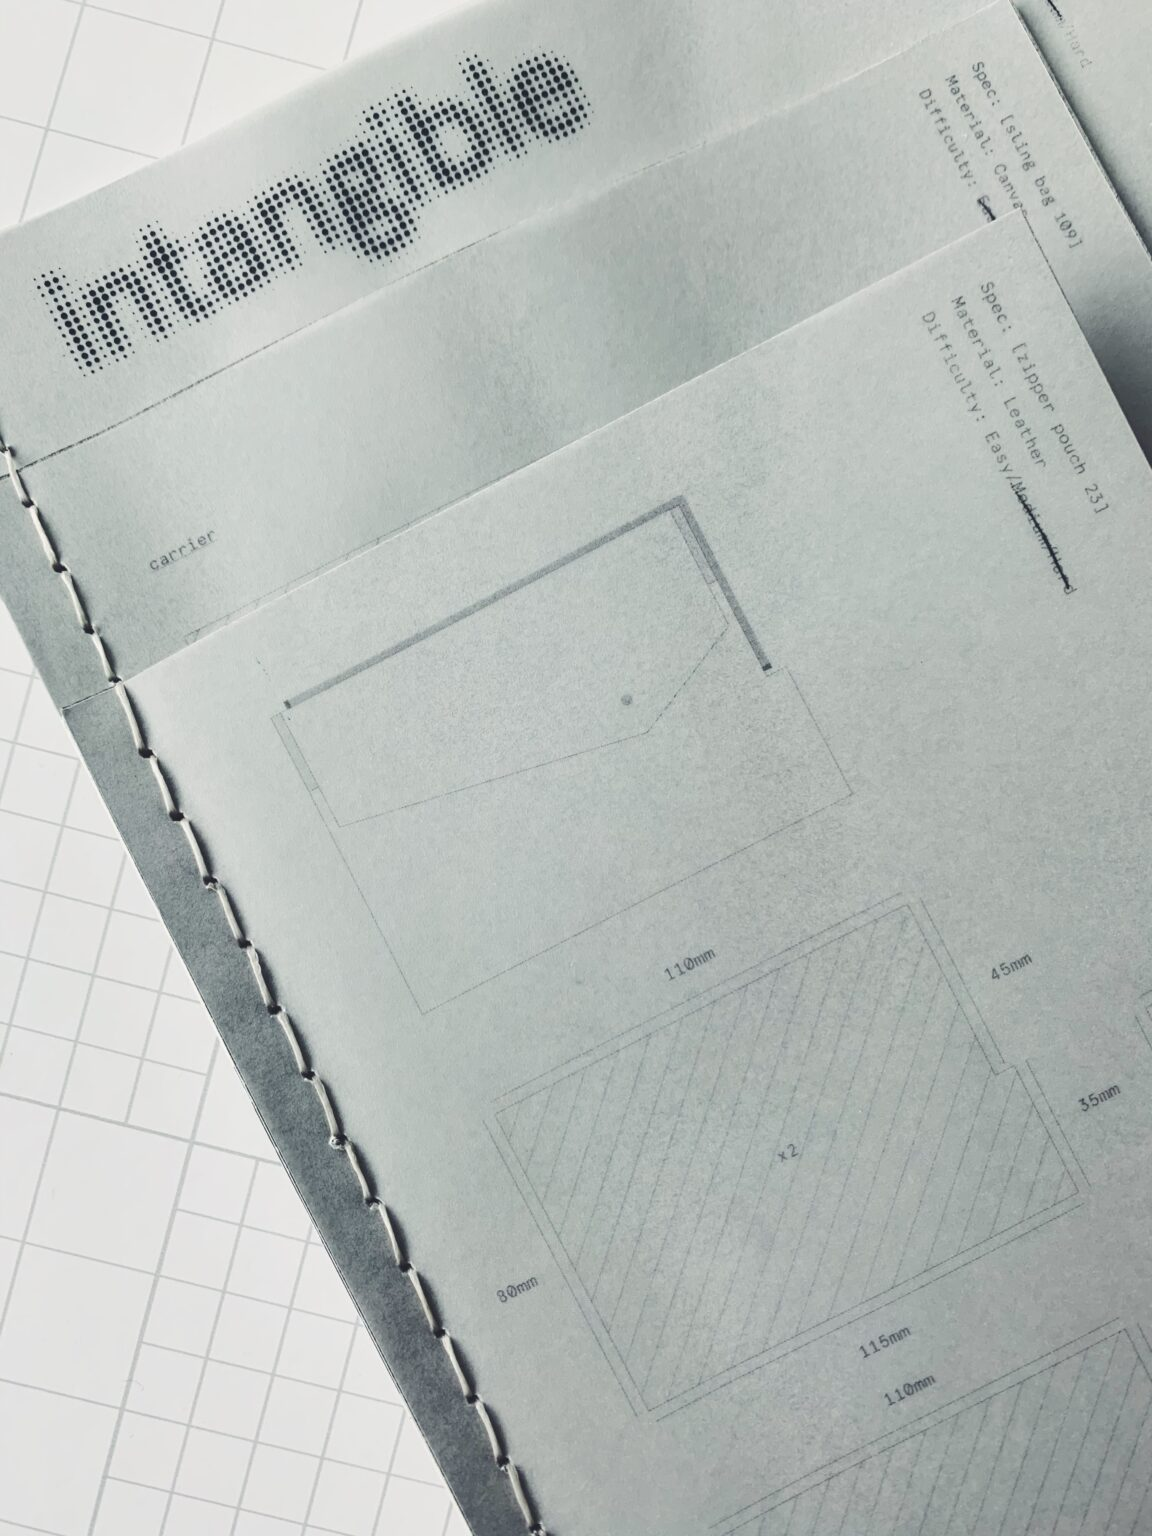 The Intangible Project Magazine